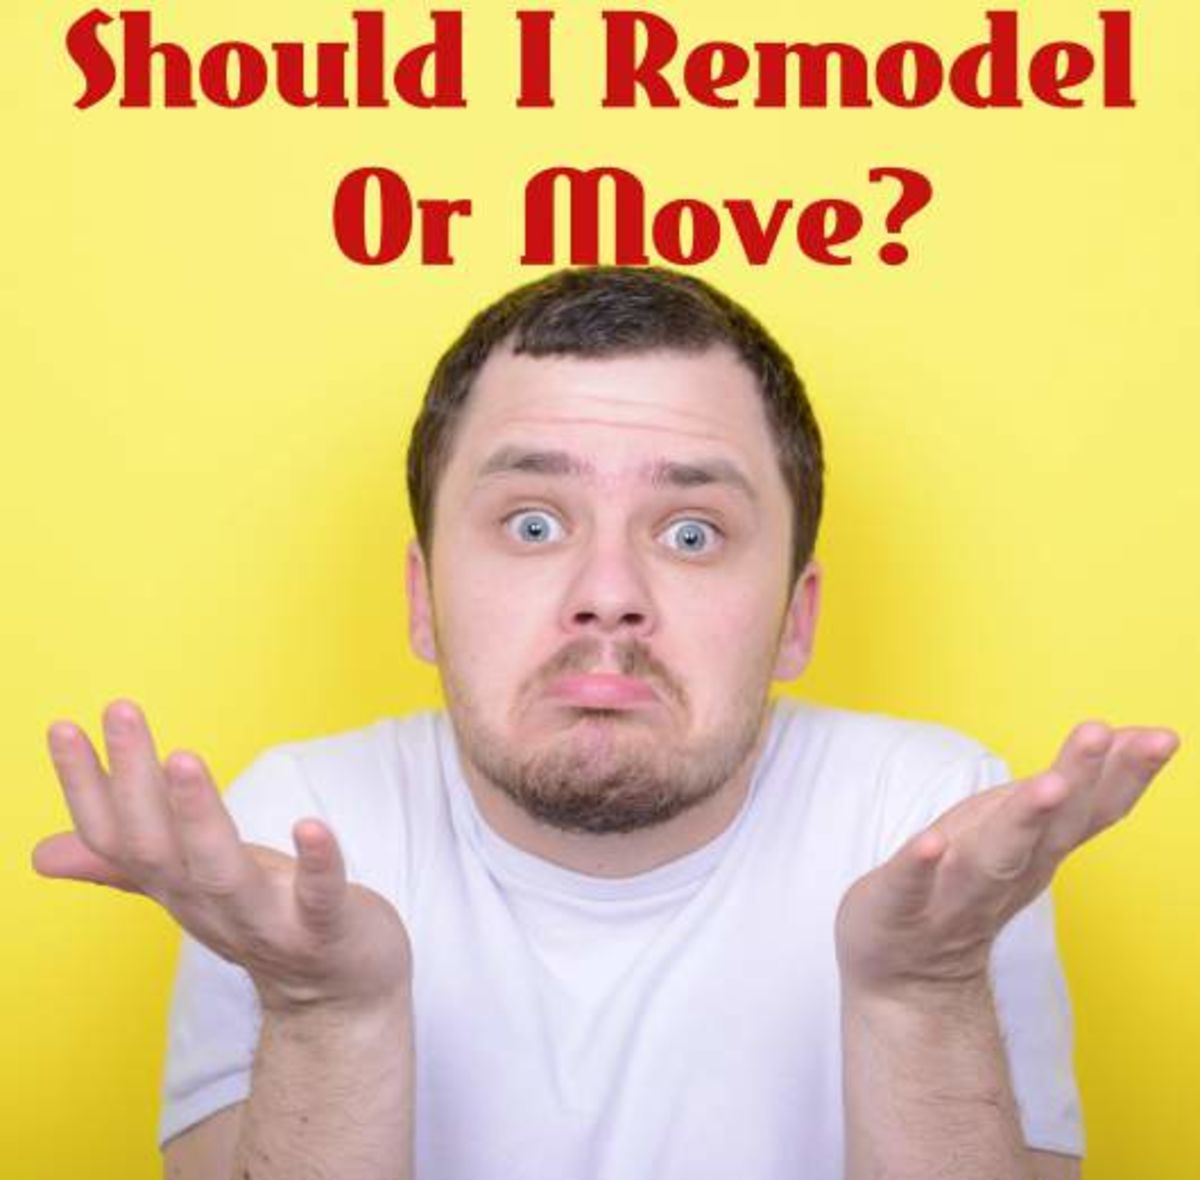 Headline for Top 5 Articles on Whether to Remodel or Move